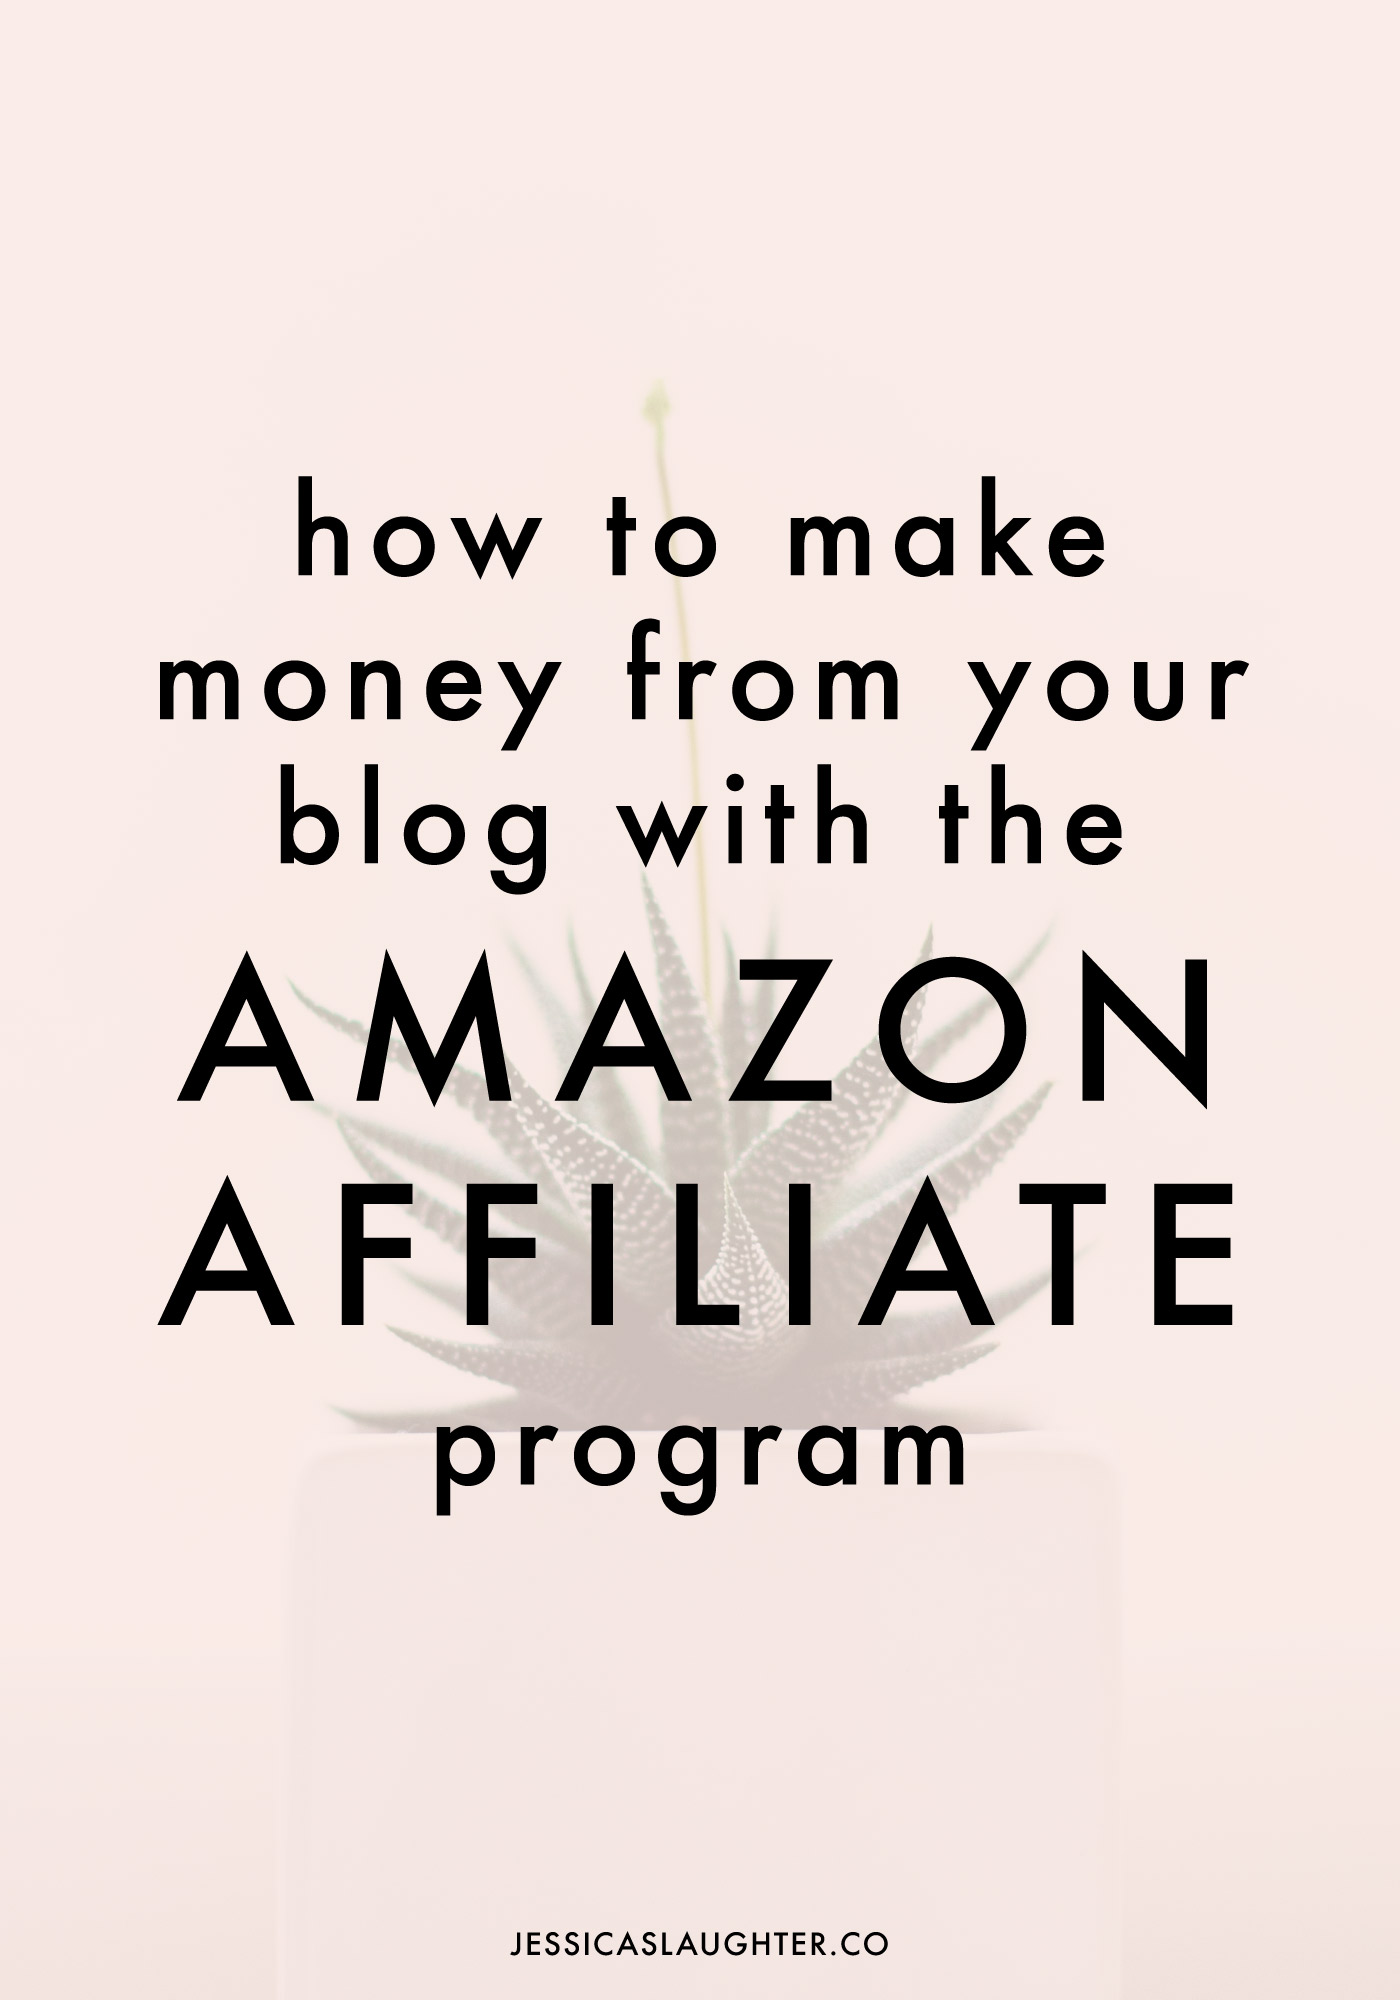 An in-depth guide on what being an Amazon affiliate means, how to start earning money as one, and everything I've learned since making $2,000 last month from Amazon!